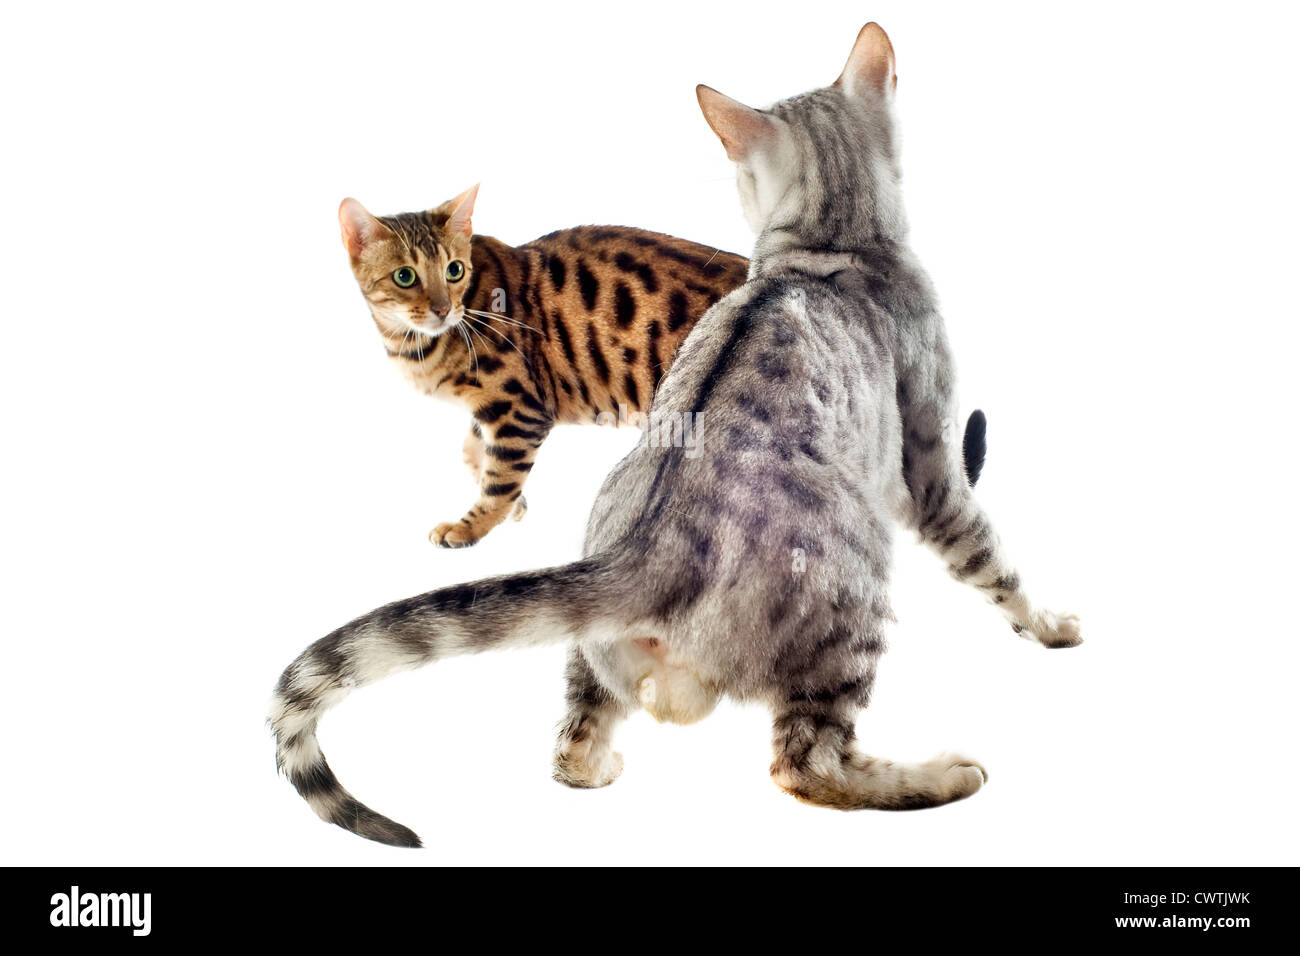 portrait of purebred bengal cats on a white background, focus on the firs cat - Stock Image